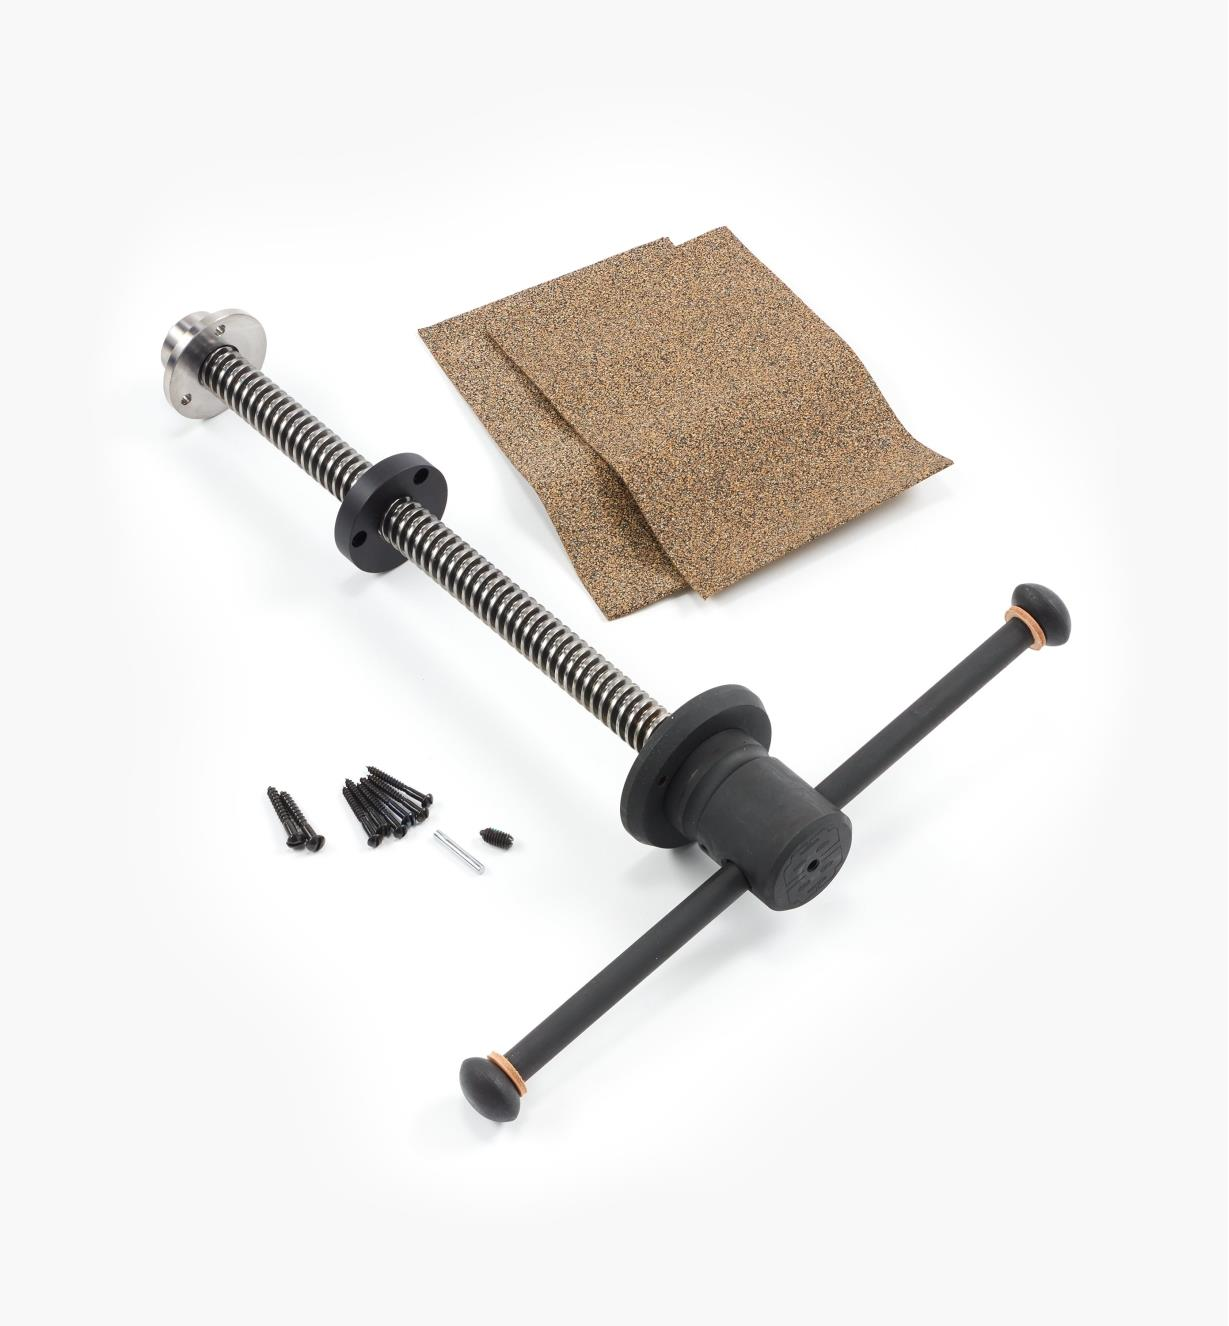 06G0125 - Benchcrafted Classic Leg Vise Hardware Only (No Crisscross)